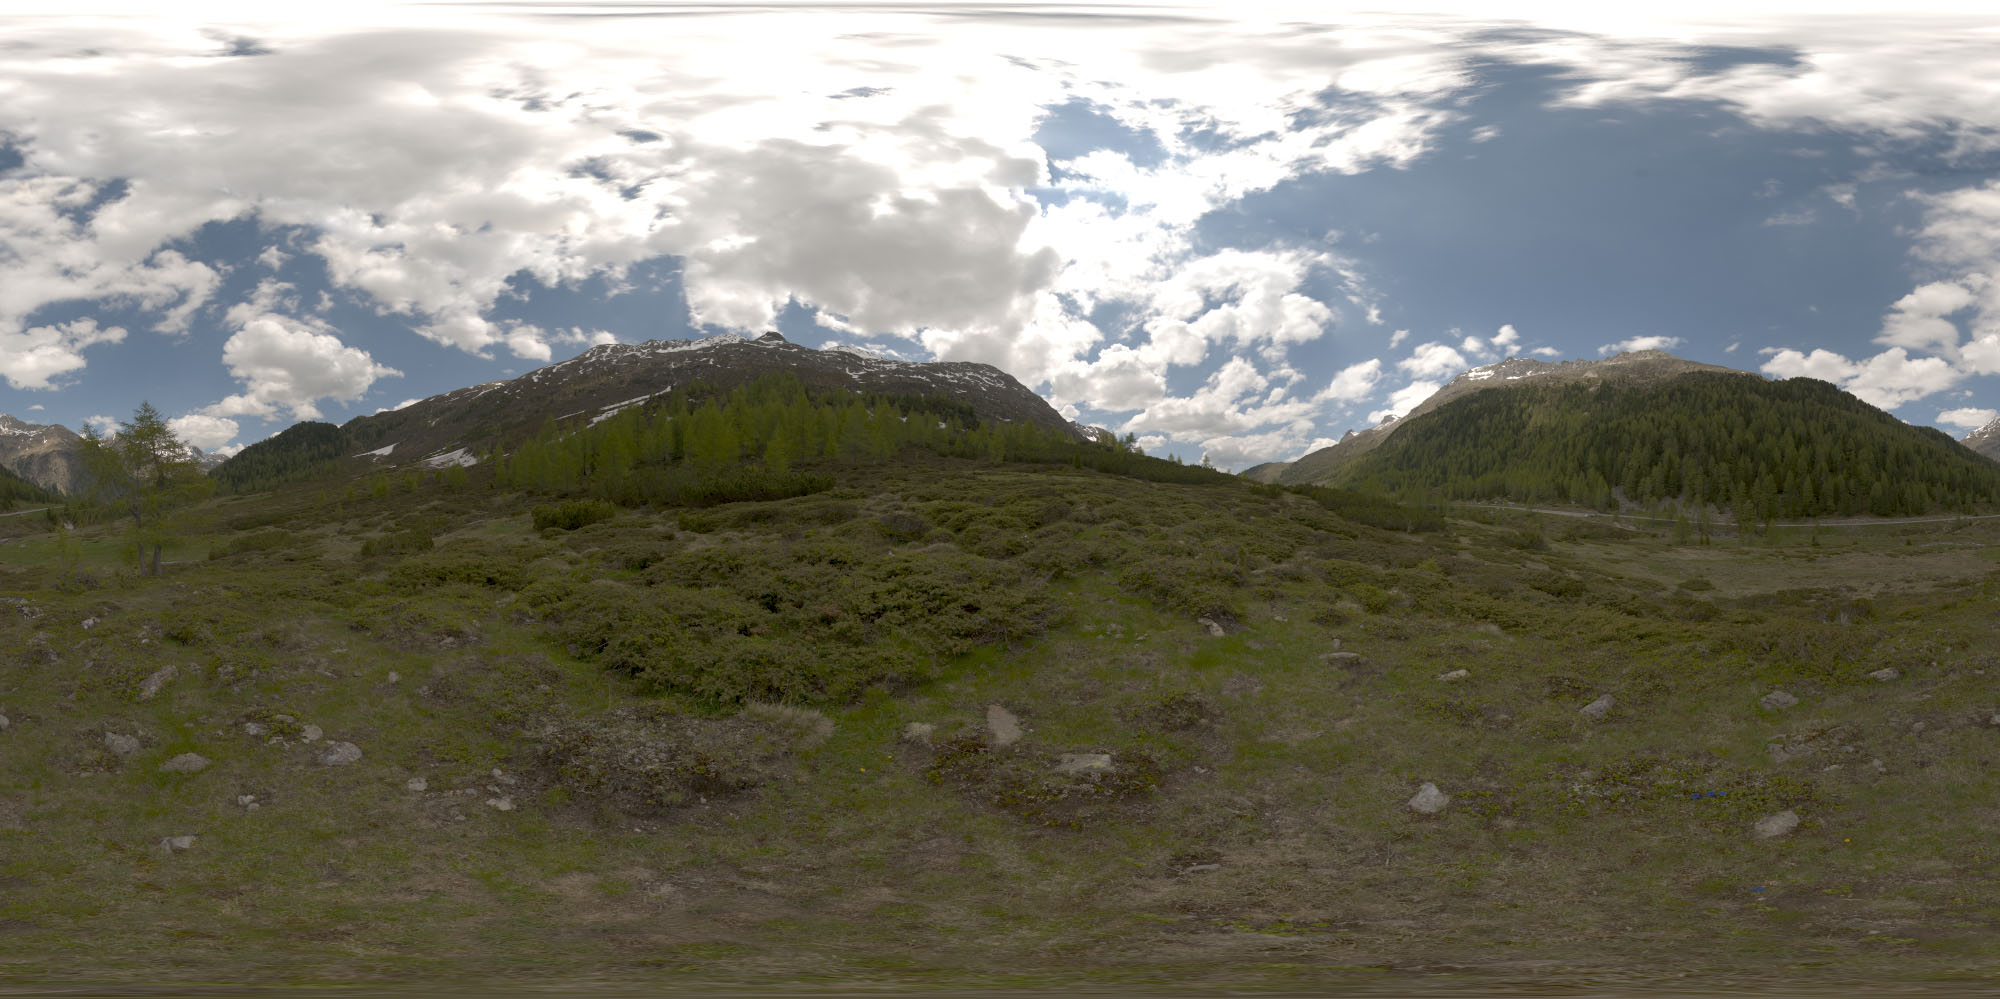 31st 360 degree hdri panorama release high resolution for background